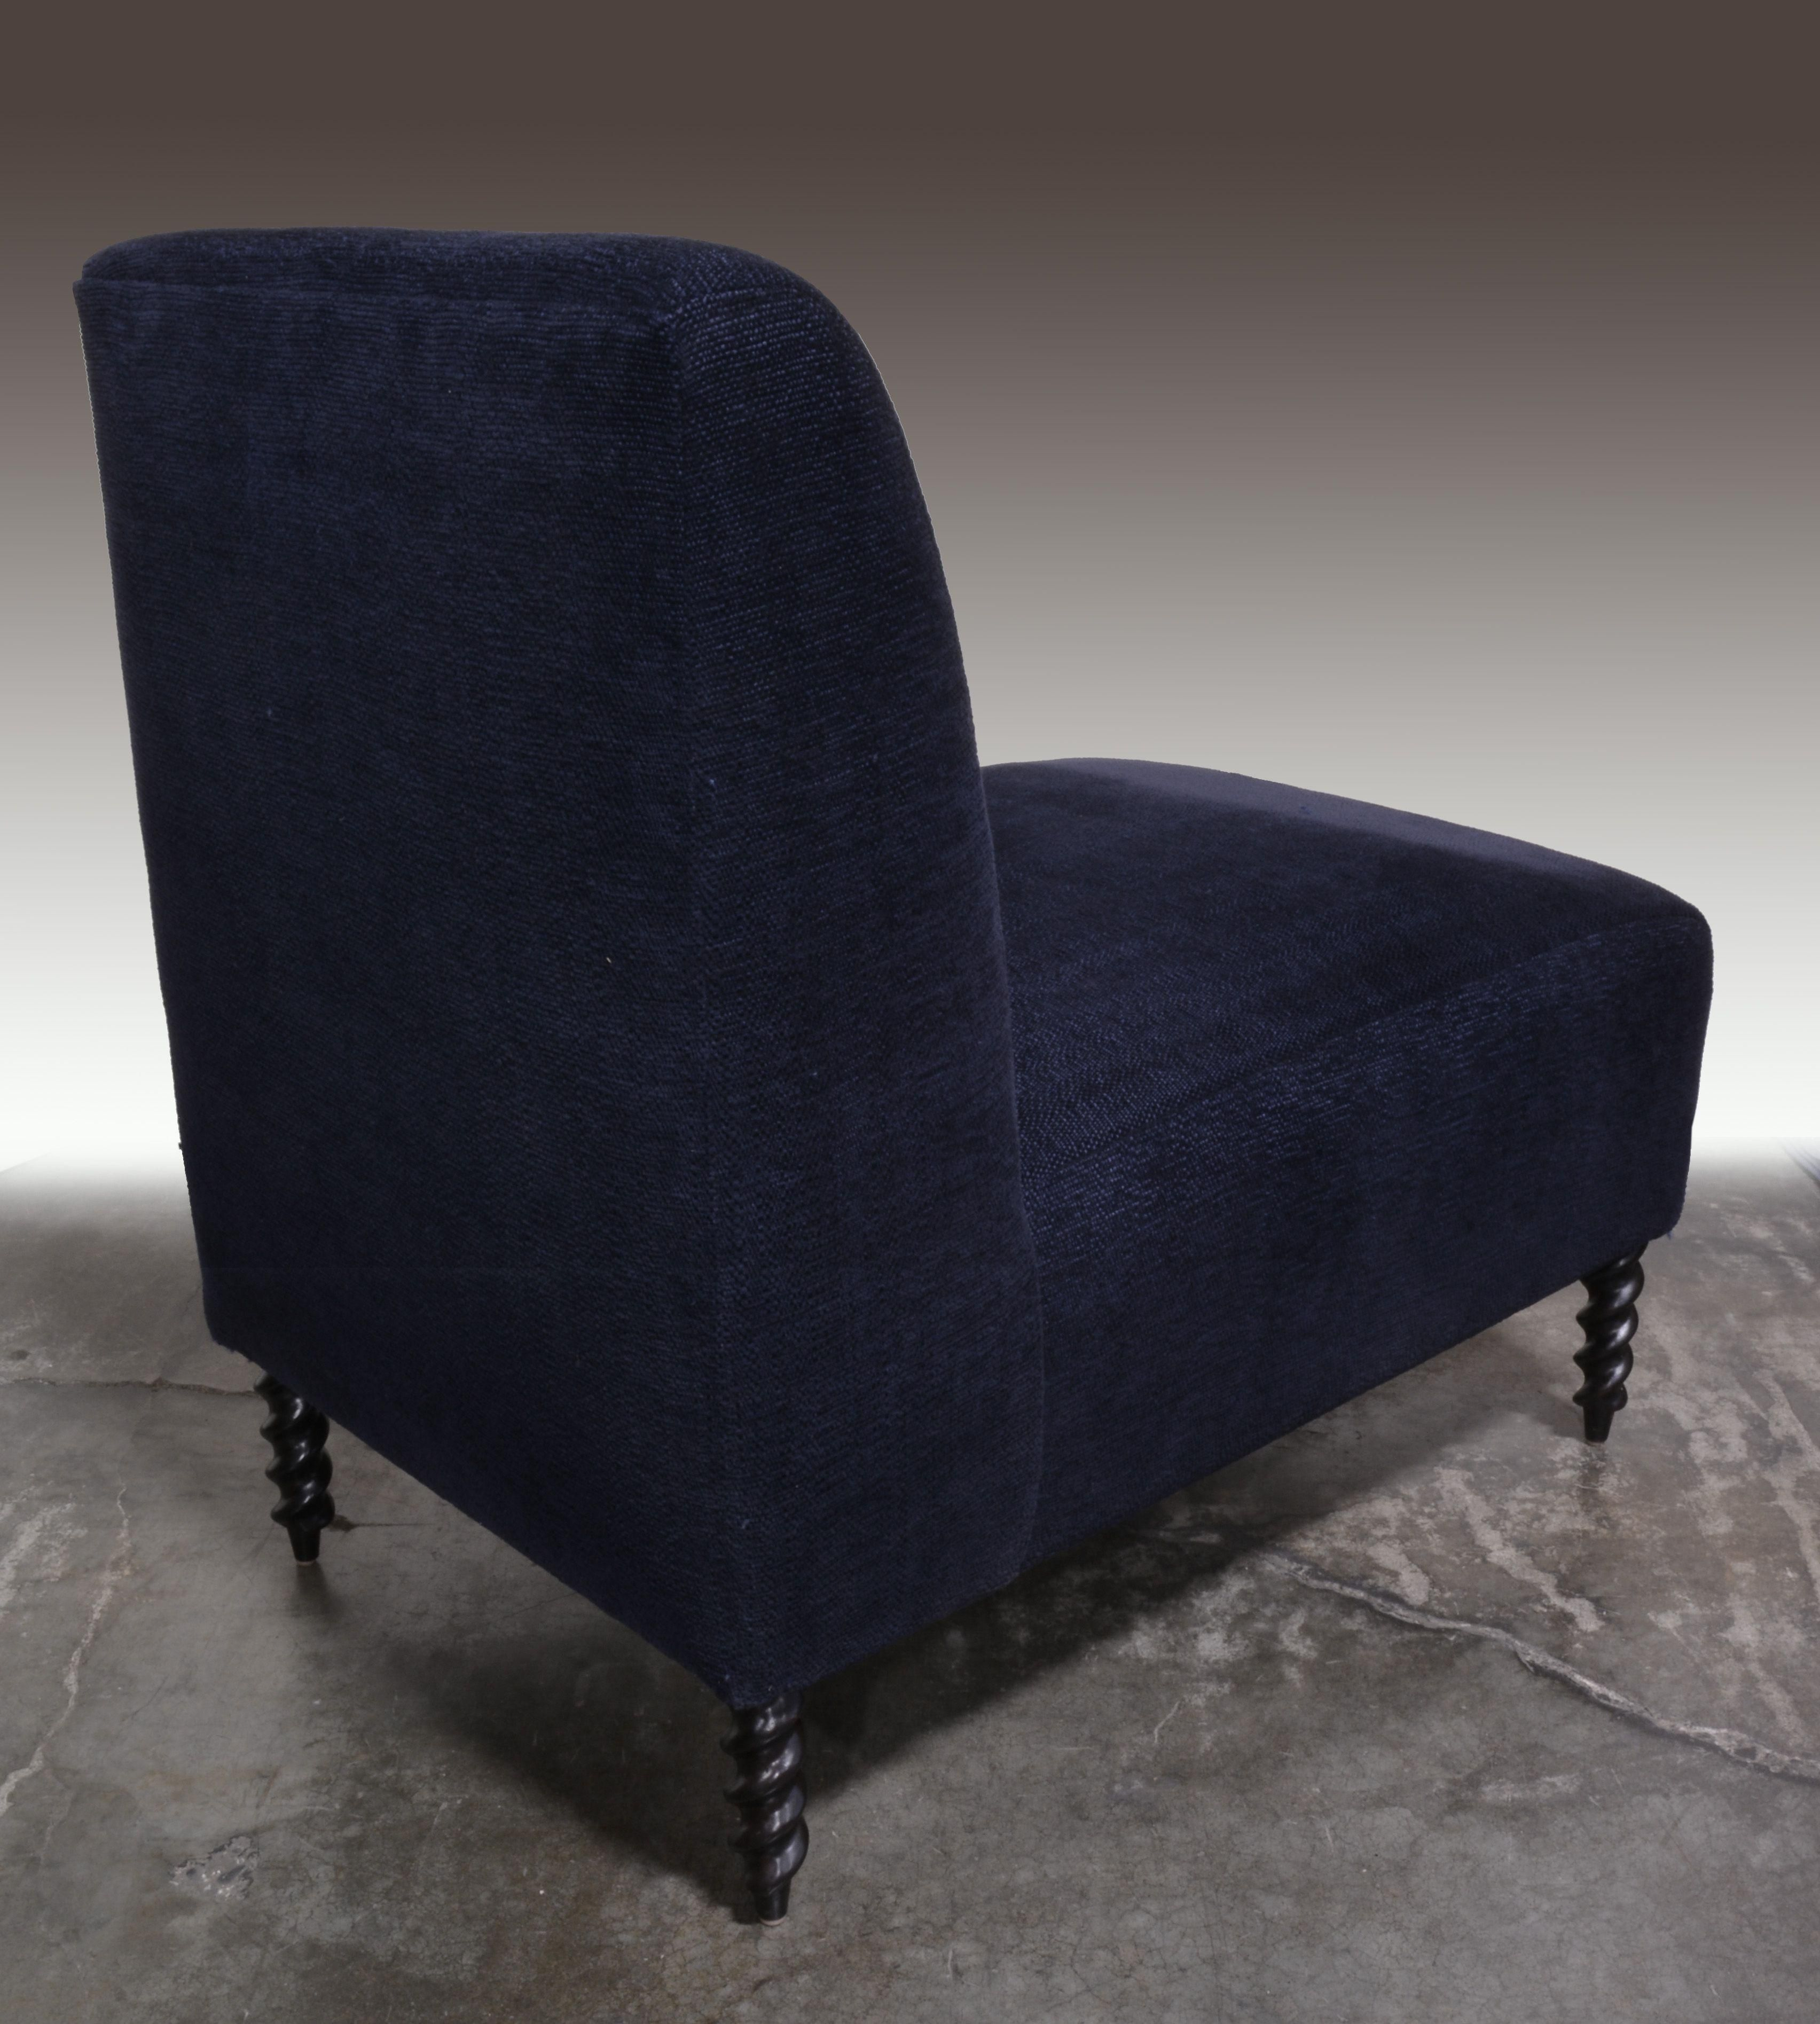 Charmant Navy Blue Slipper Chair   A Pair   Image 4 Of 4